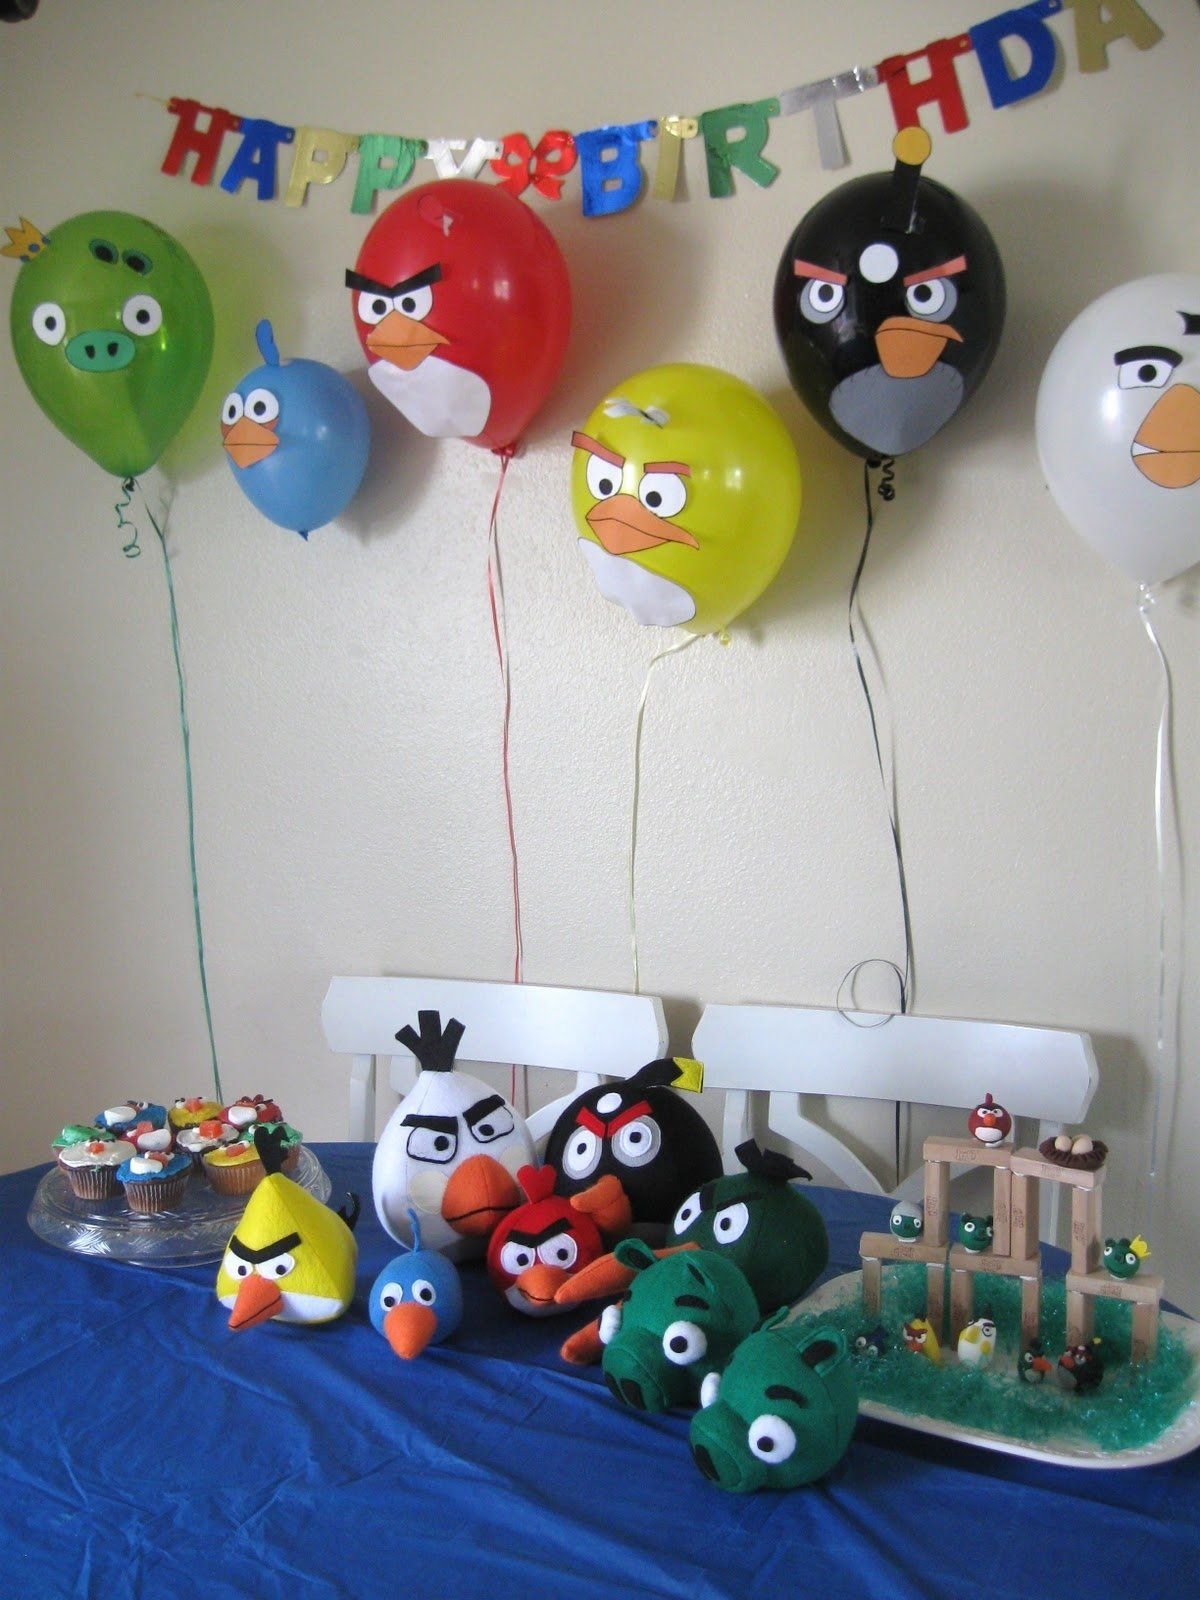 10 Pretty Party Ideas For 2 Year Old Boy angry birds balloons jacks next birthday party idea ideas for 7